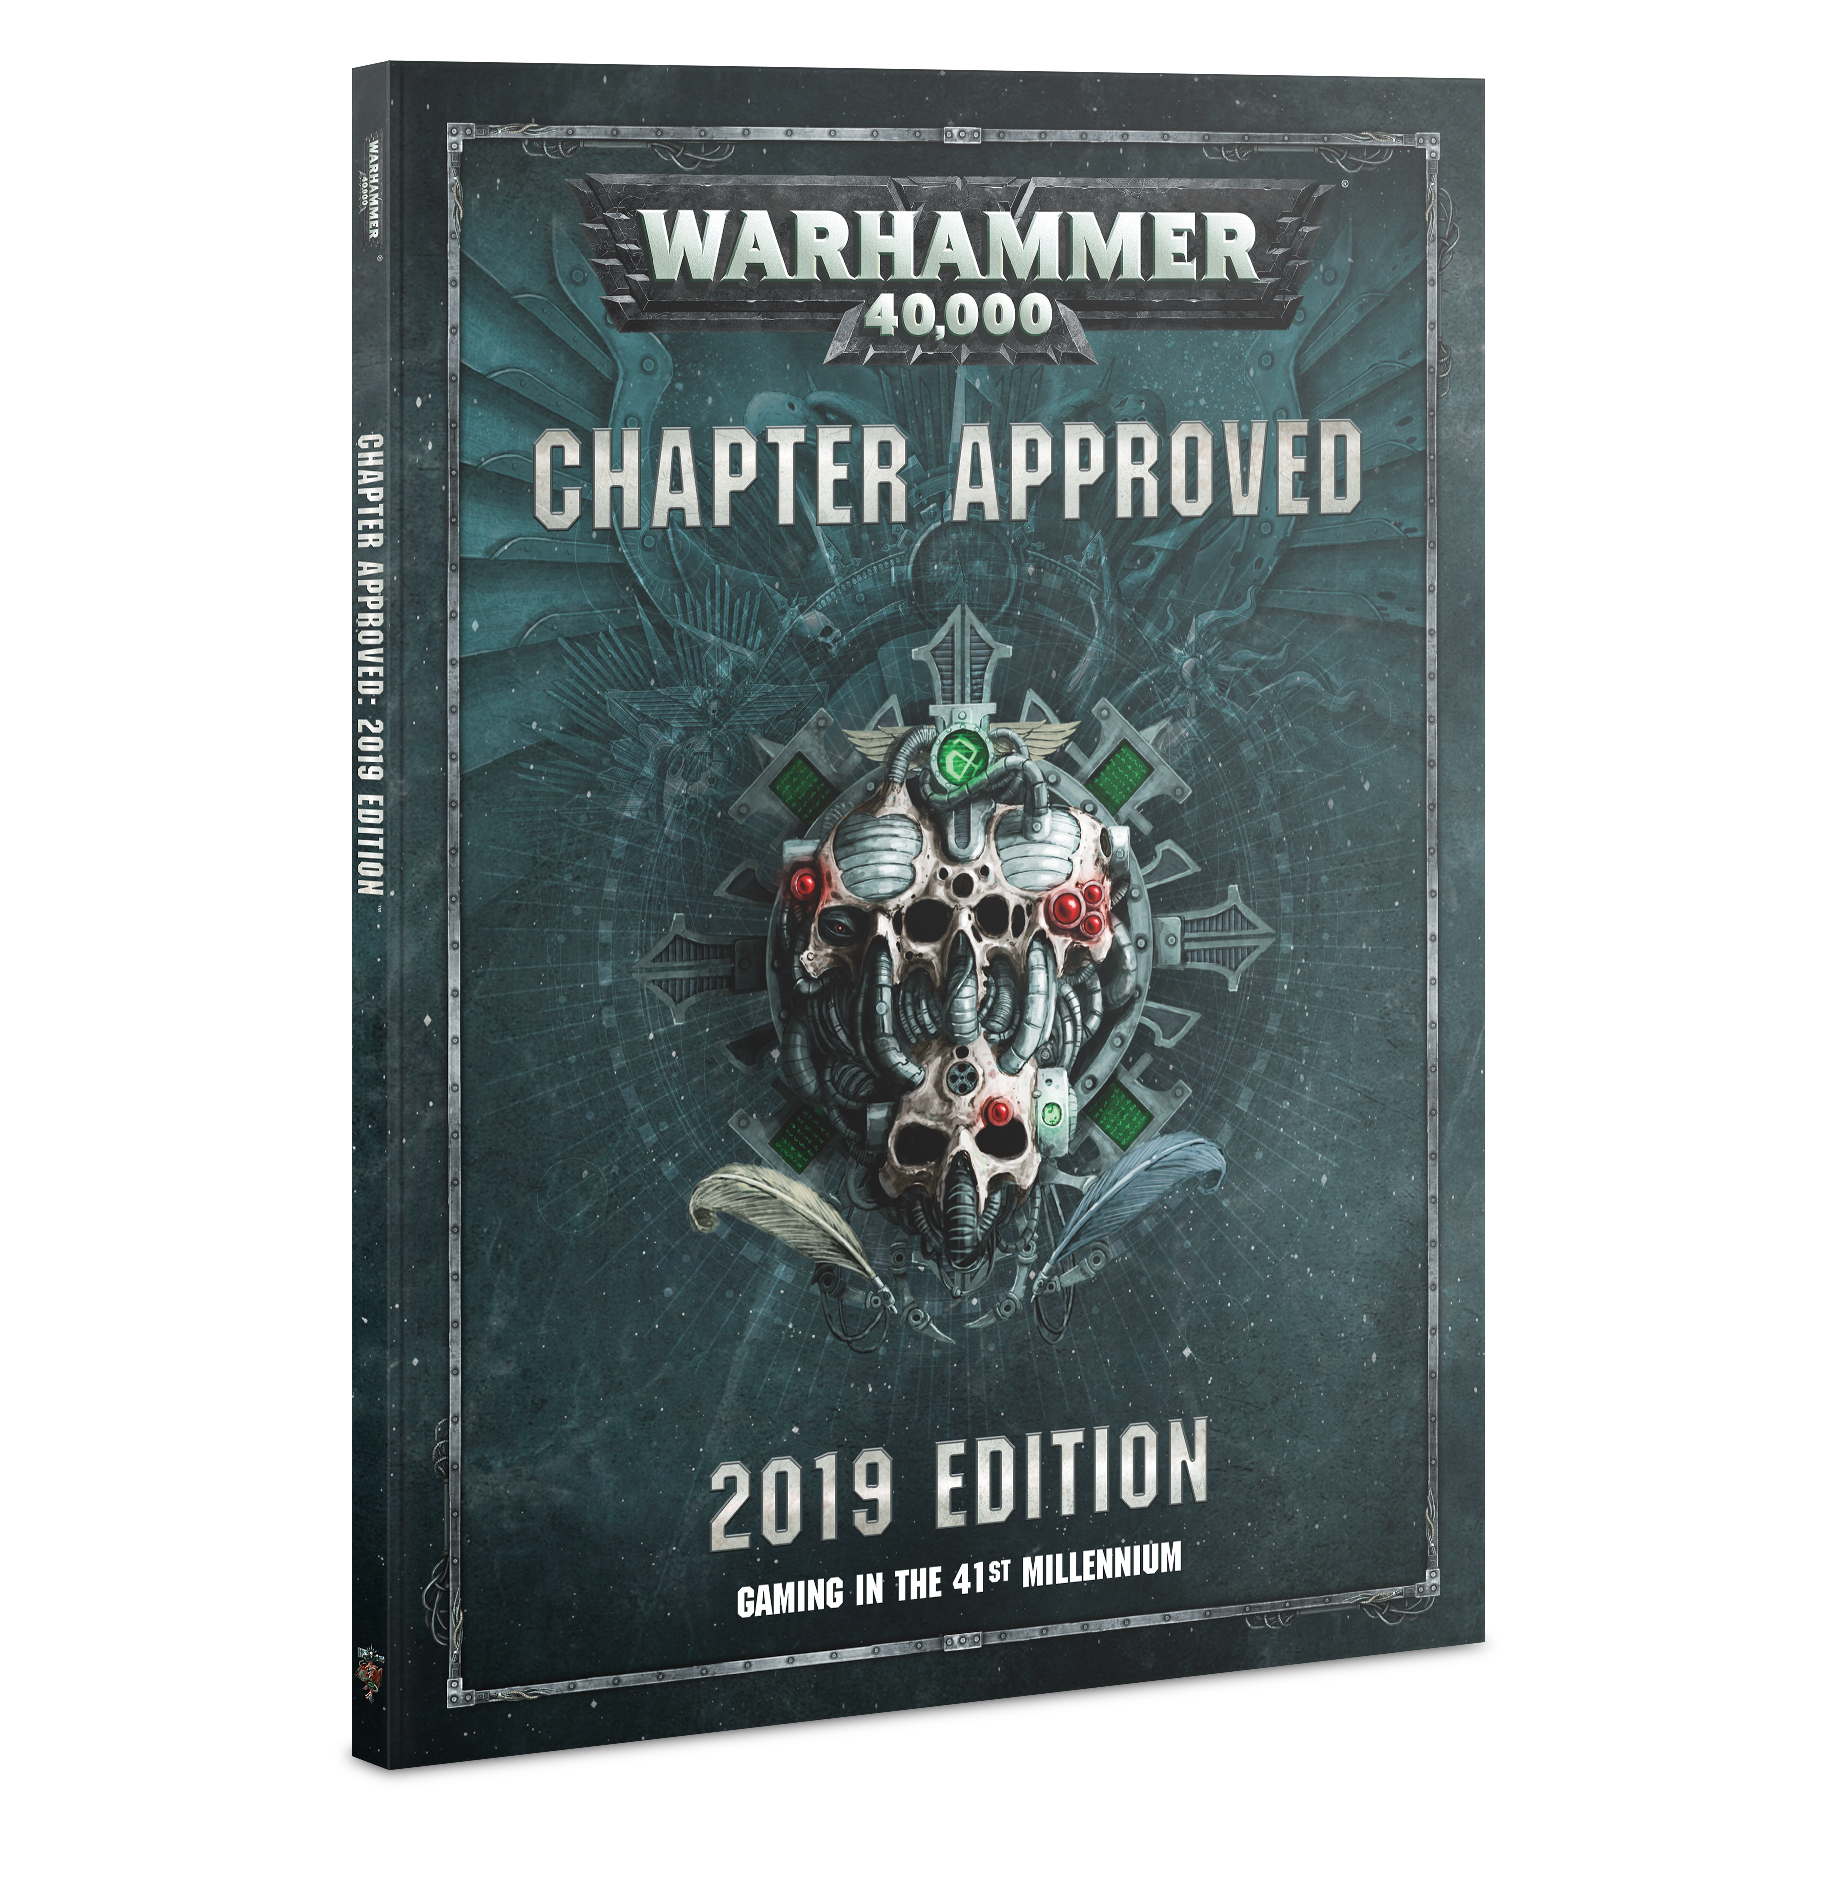 Chapter Approved 2019 Edition